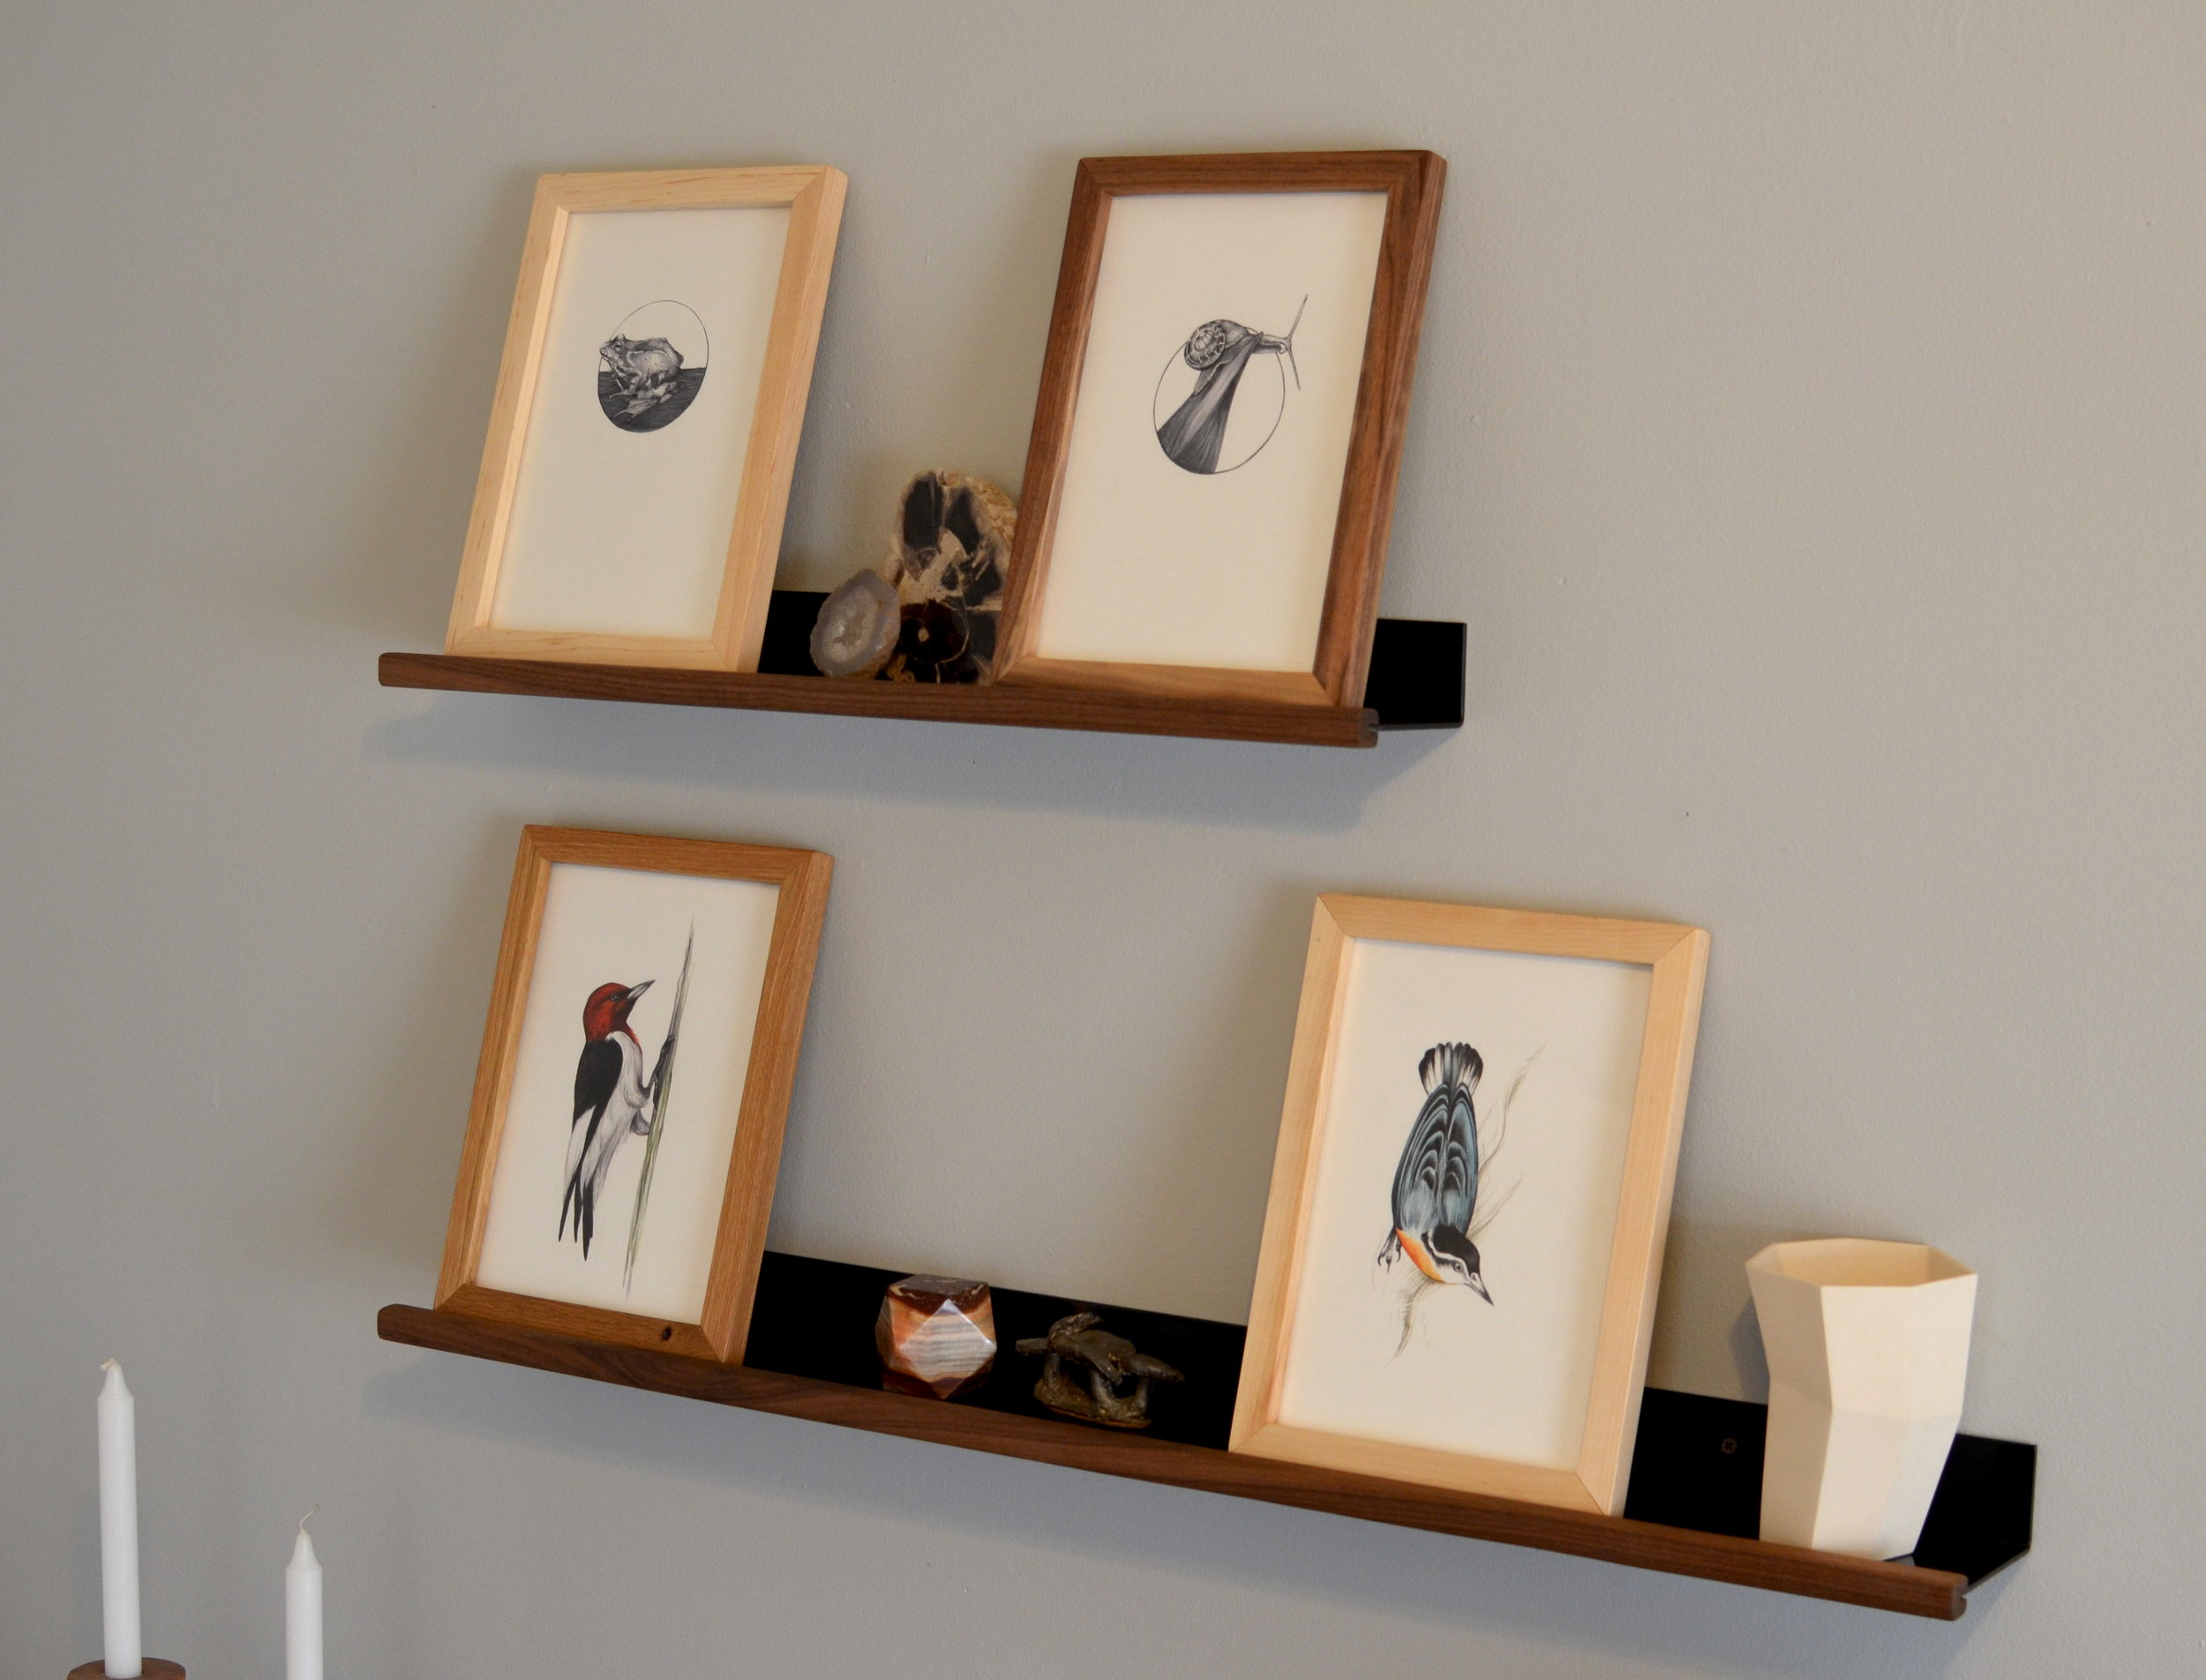 DISPLAY SHELVES - These light weight shelves make a perfect wall display. Giving you the ability to change and rearrange your favorite family photos and art work. These shelves are available now in 2 and 3 foot lengths. They can be custom ordered to suit your space, contact us for more details.Available Now!Contact us for prices, custom sizes available.